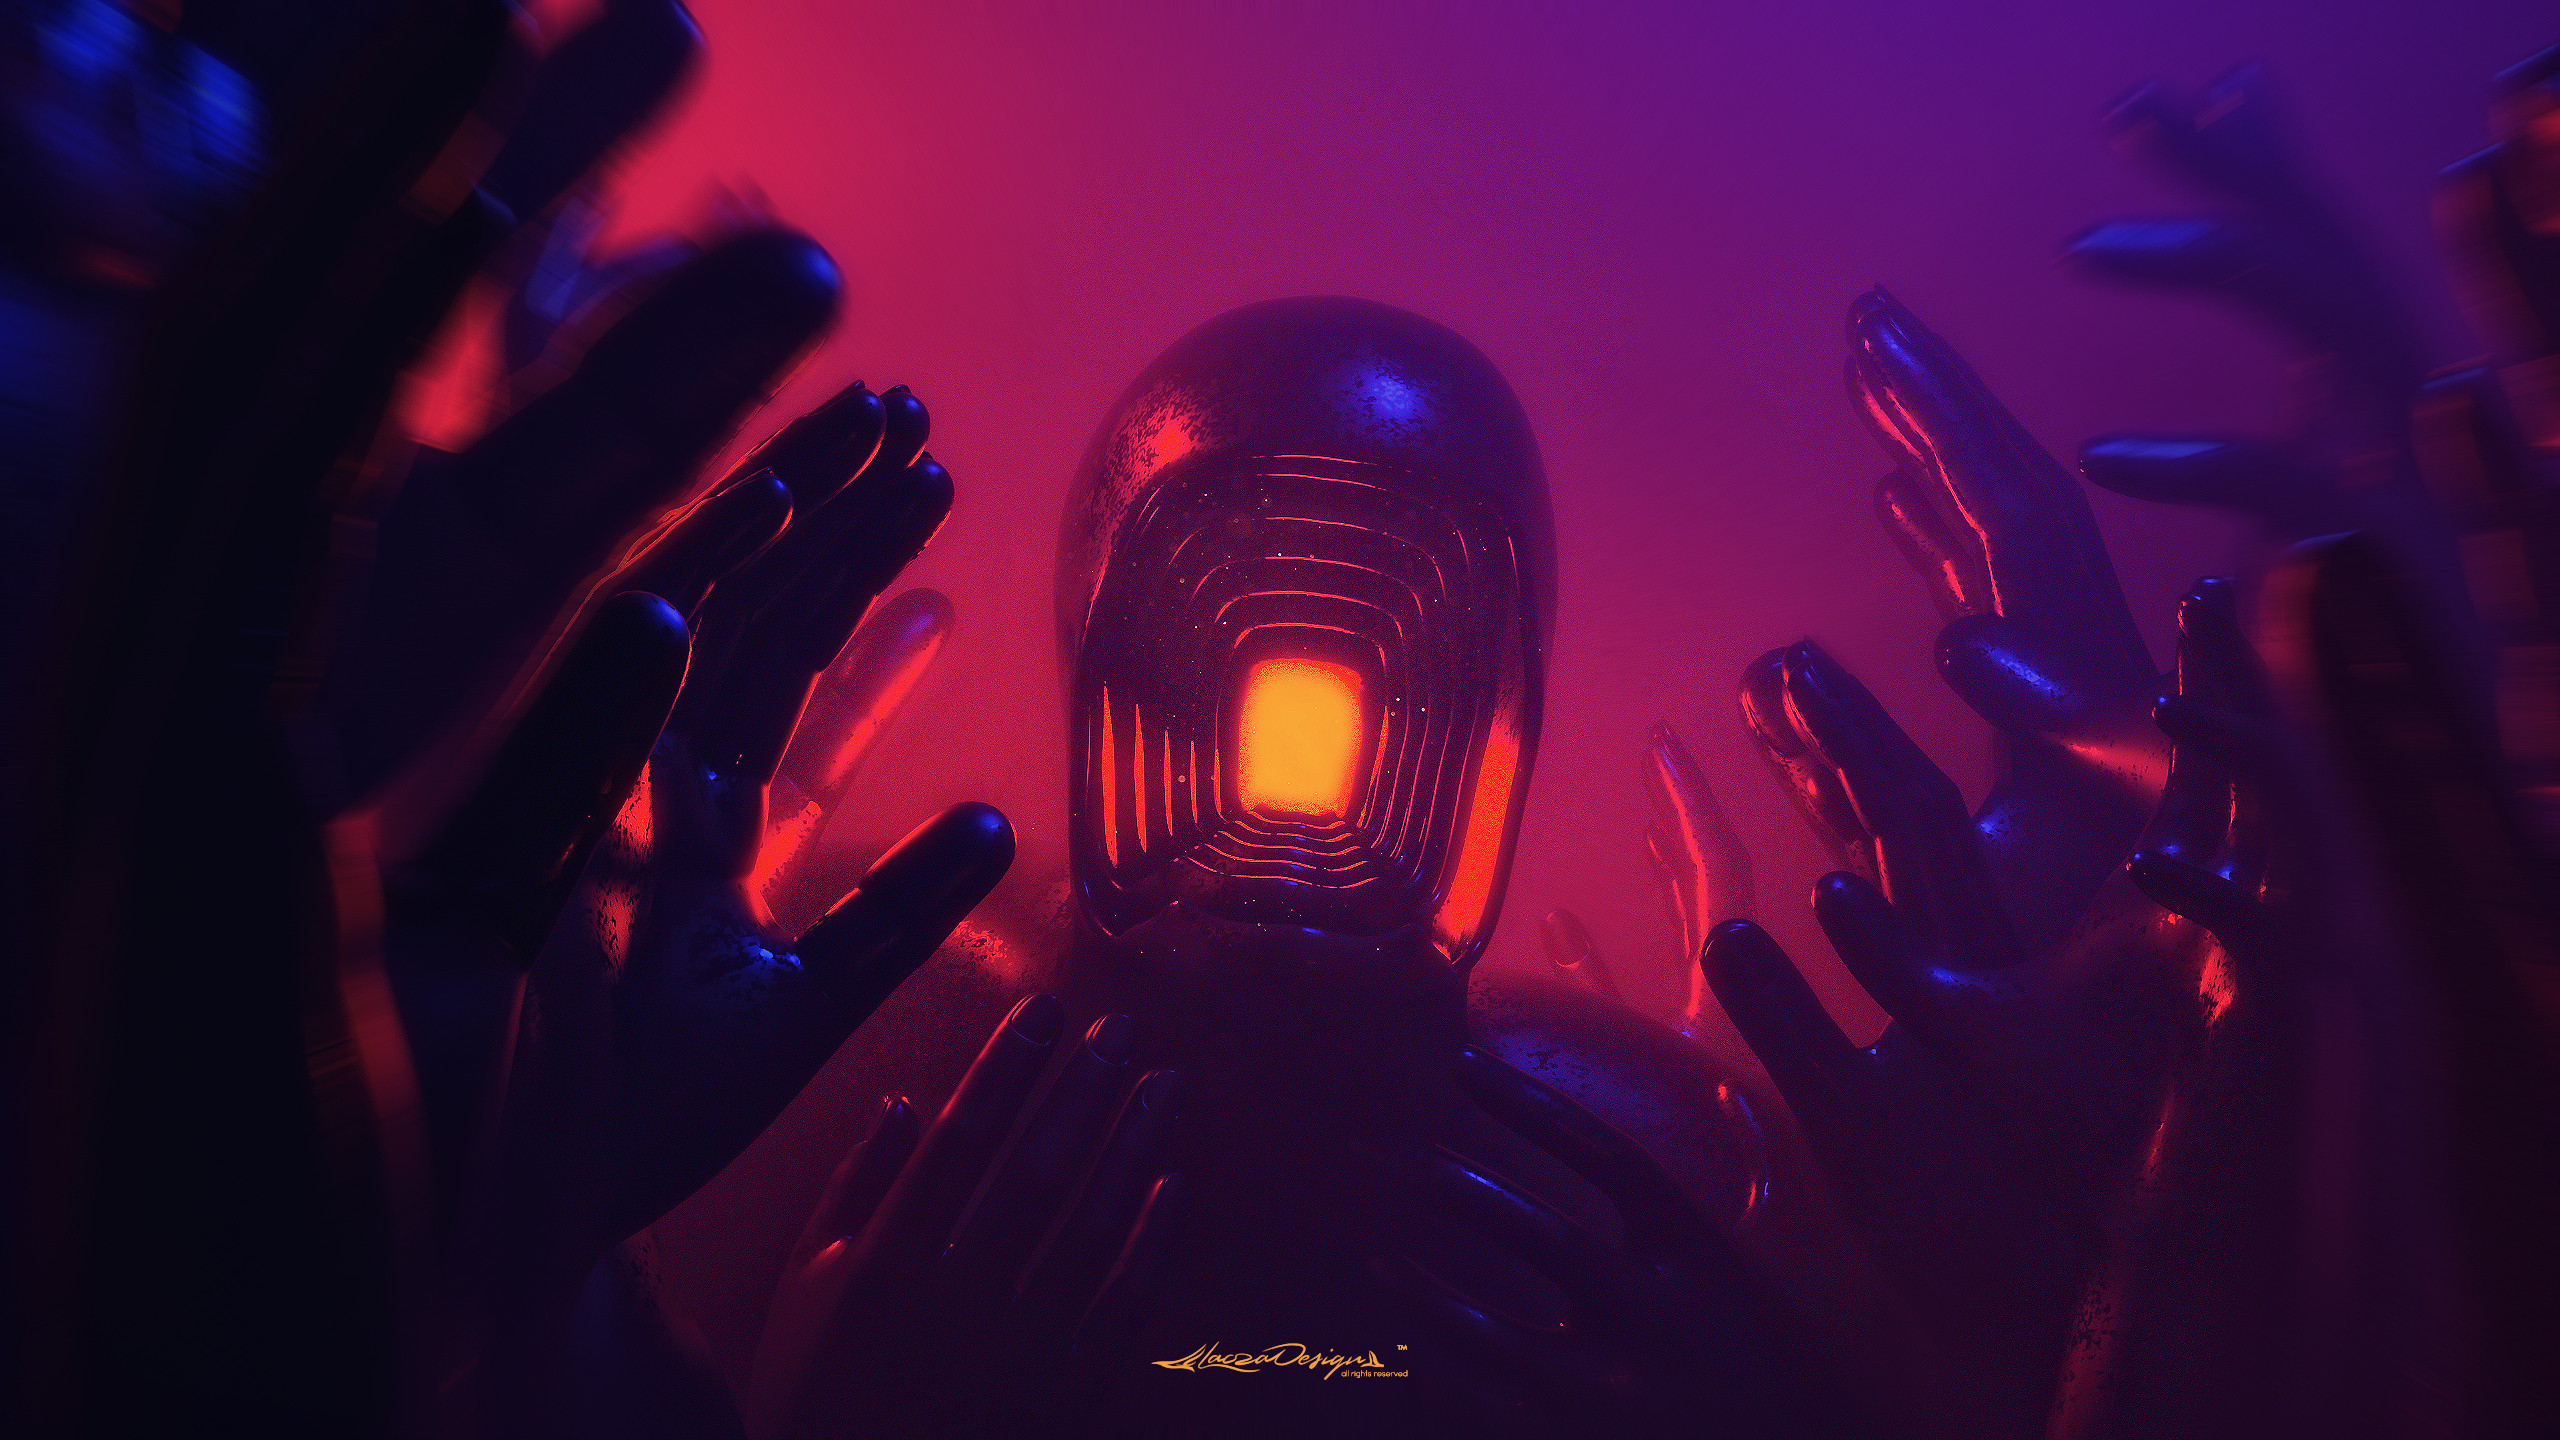 General 2560x1440 digital digital art artwork fantasy art abstract illusion 3D Abstract lights neon colorful glowing hands faceless fictional fictional character dark grunge surreal 3D 3D fractal Lacza illustration concept art environment red watermarked